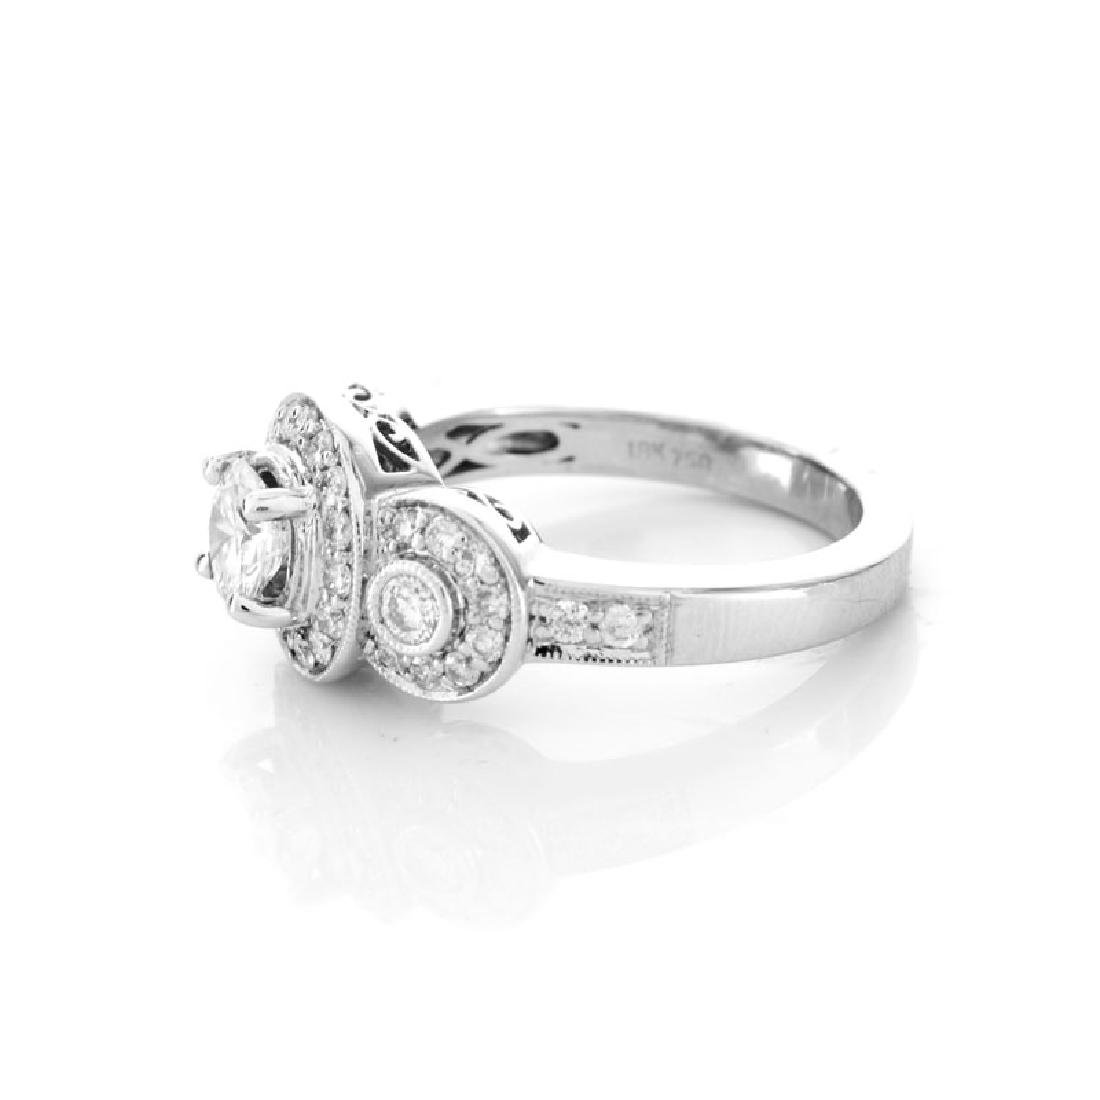 Approx. 1.40 Carat Diamond and 18 Karat White Gold - 3